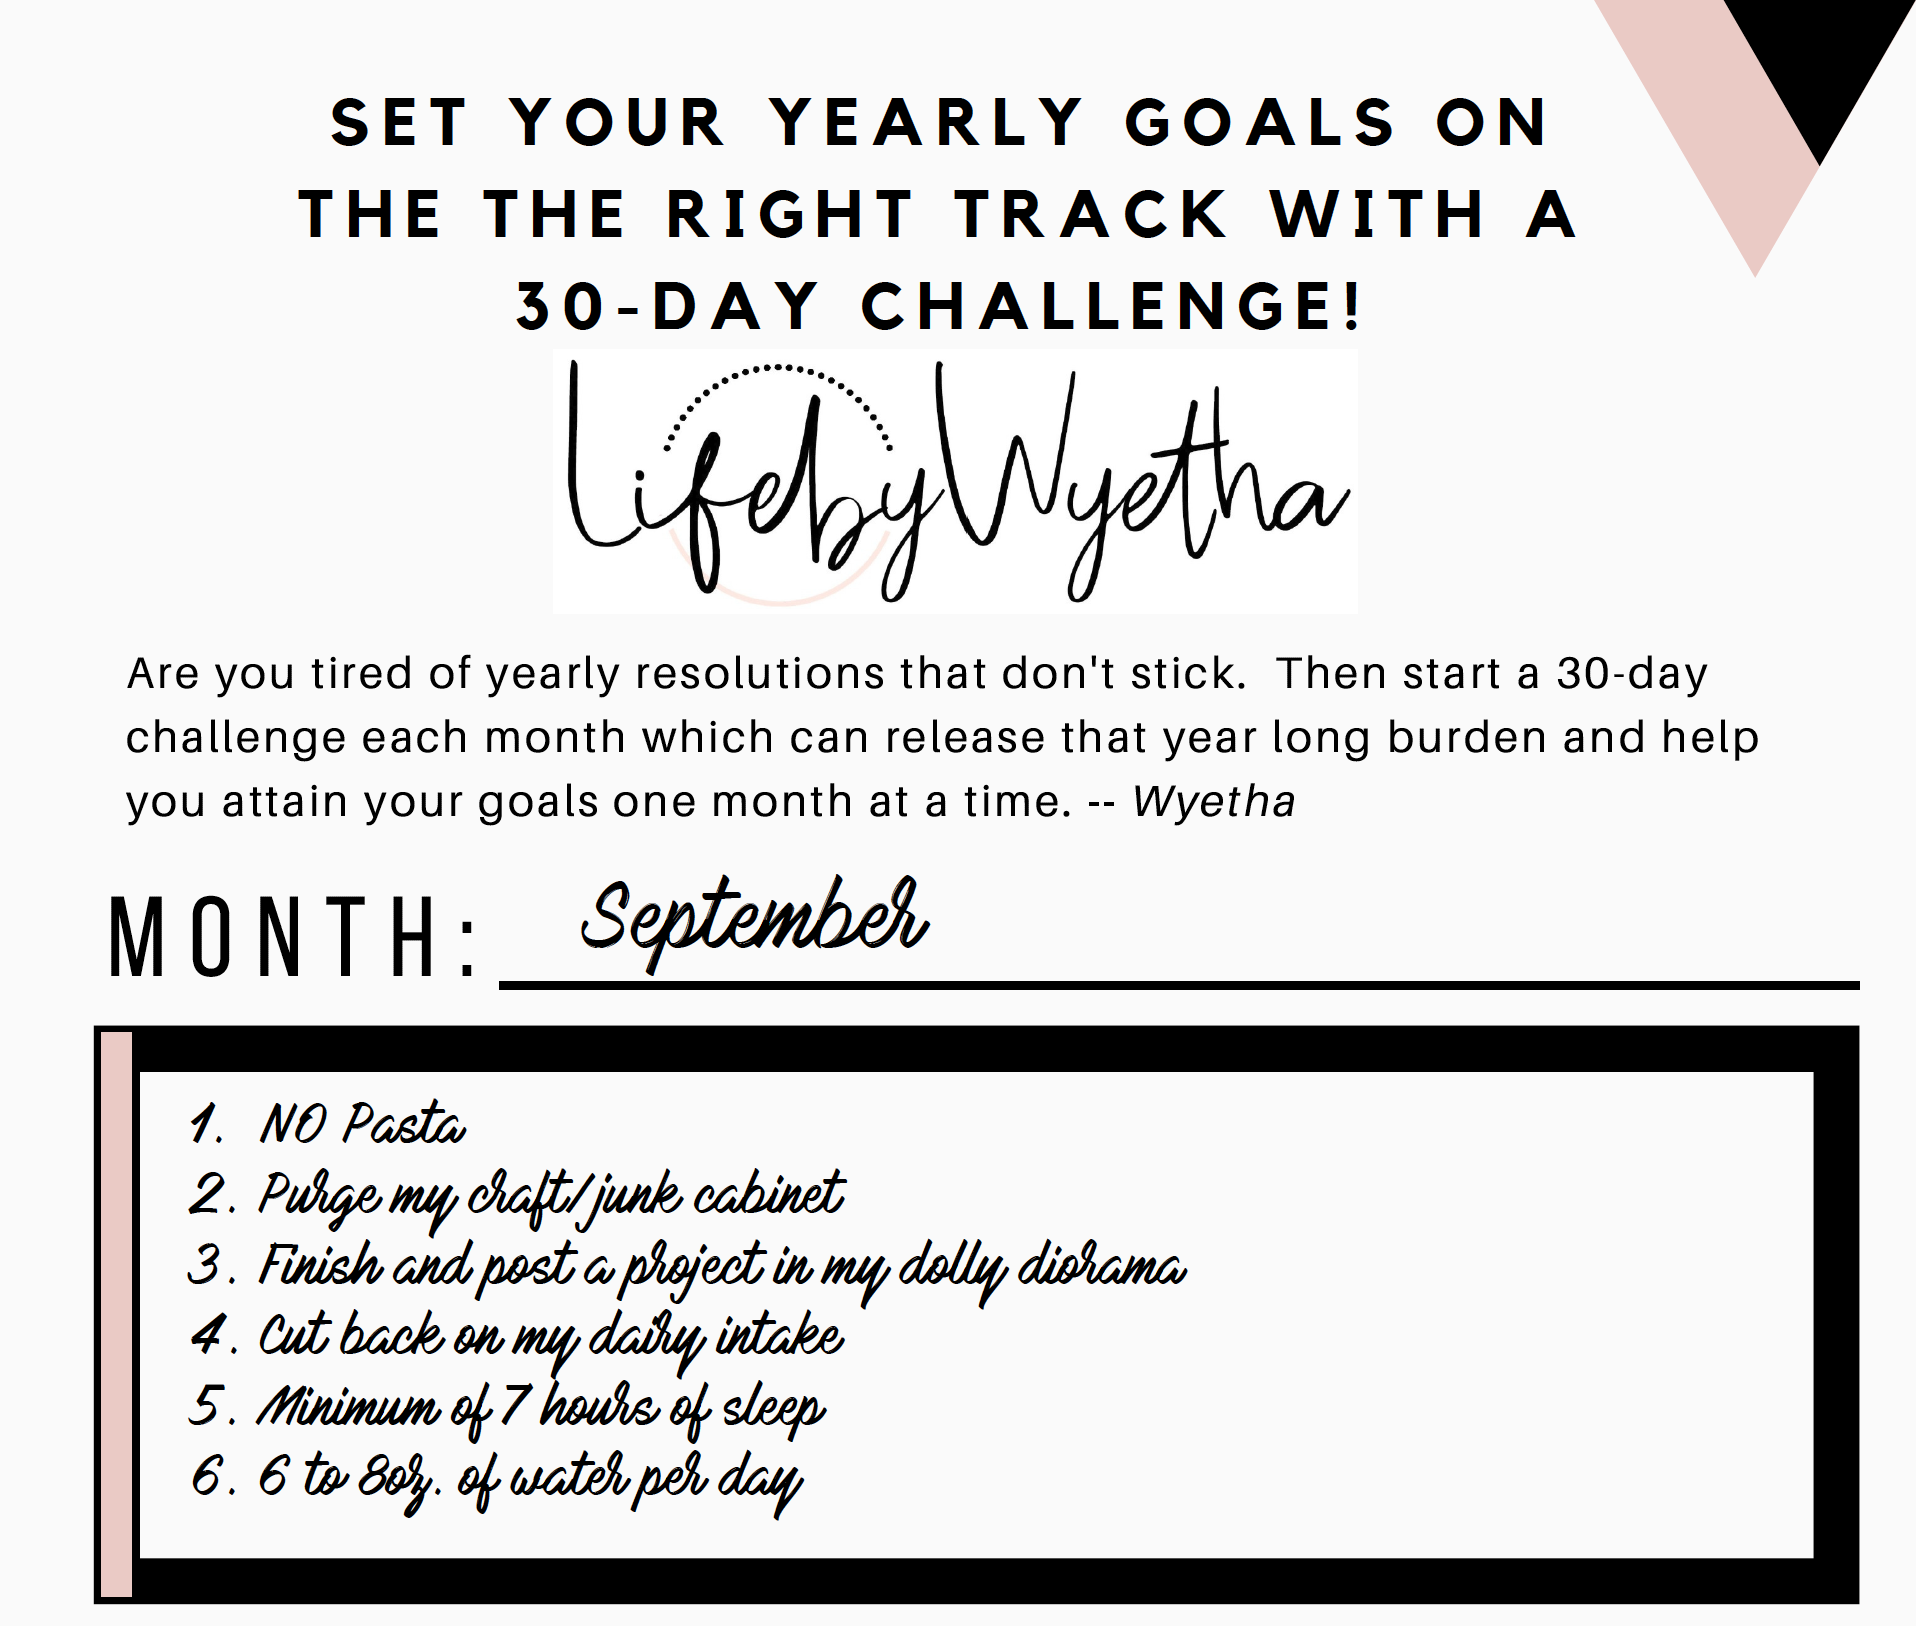 Sept 30-Day Challenge